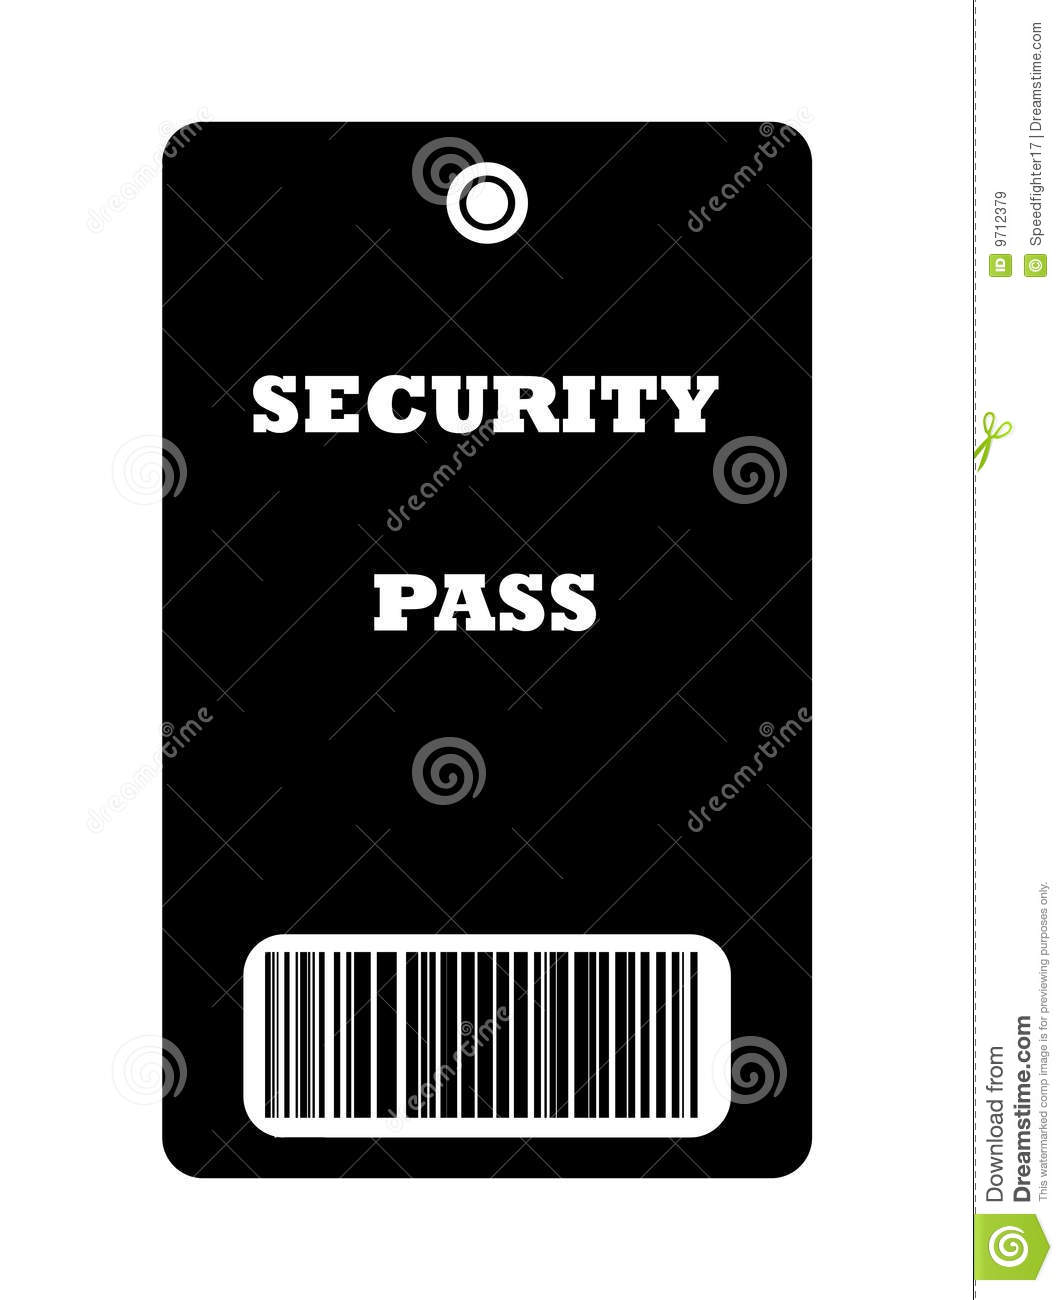 Security Pass Royalty Free Stock Images - Image: 9712379